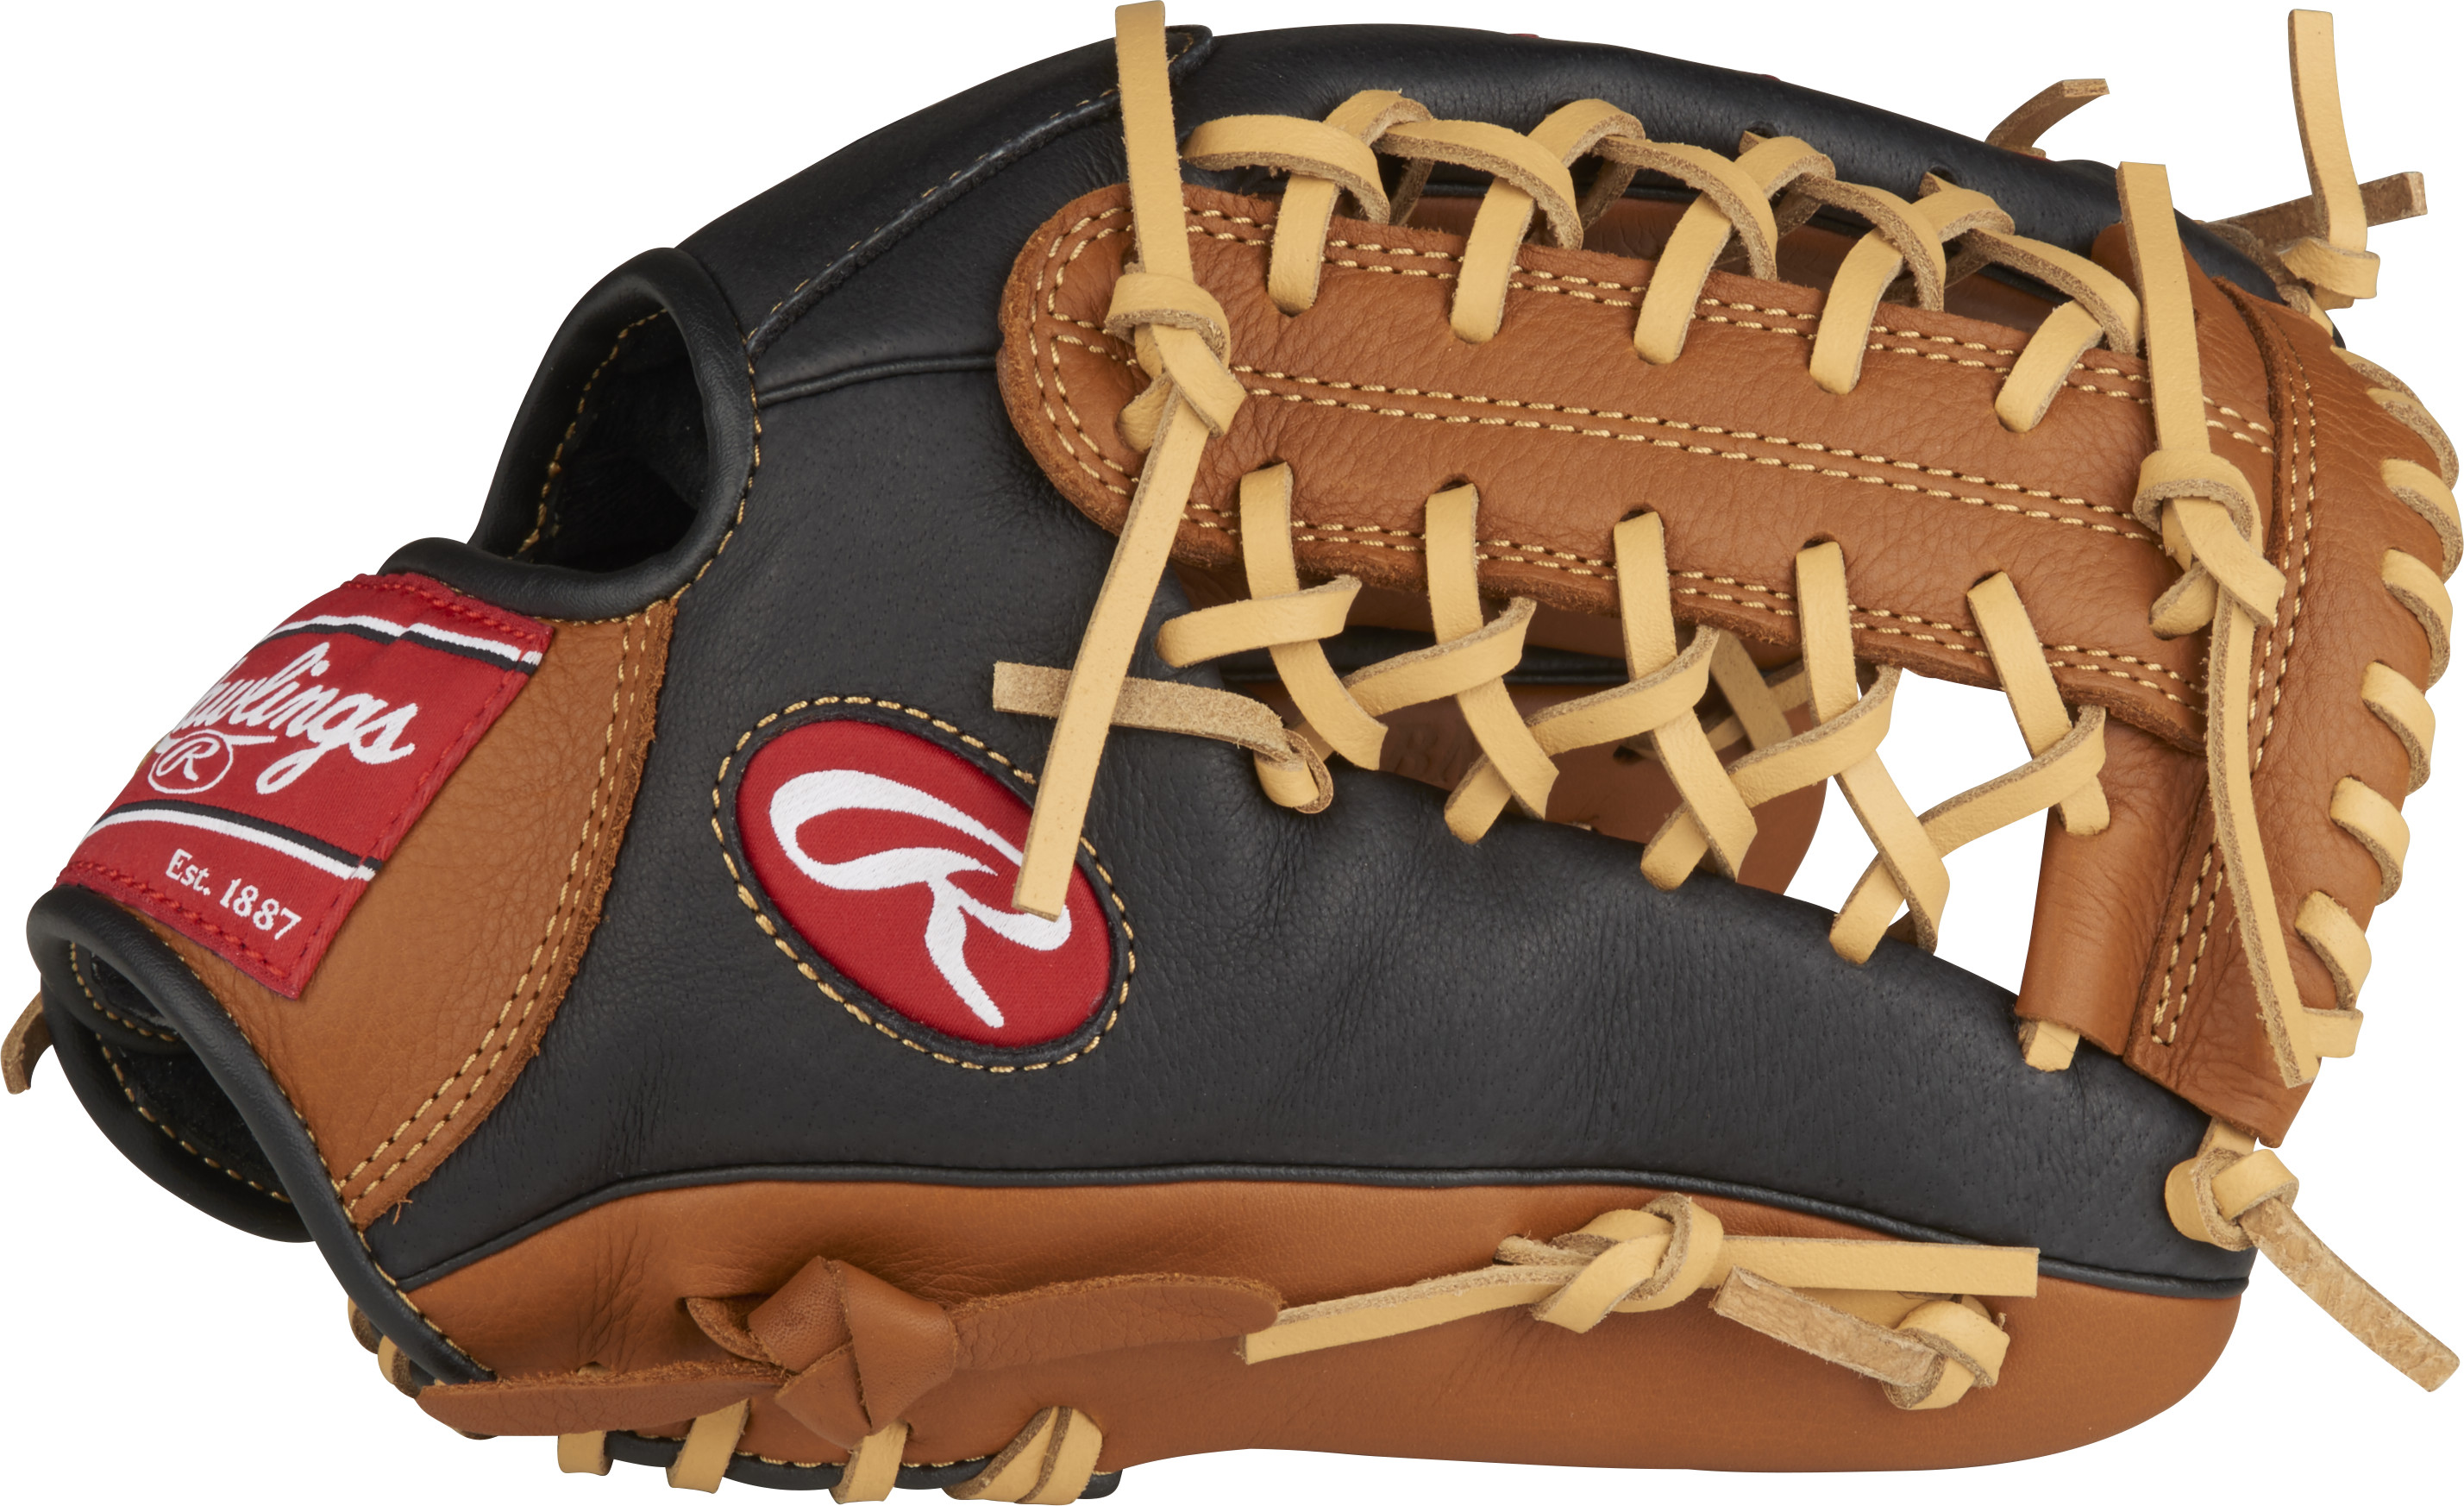 http://www.bestbatdeals.com/images/gloves/rawlings/P115GBMT-3.jpg